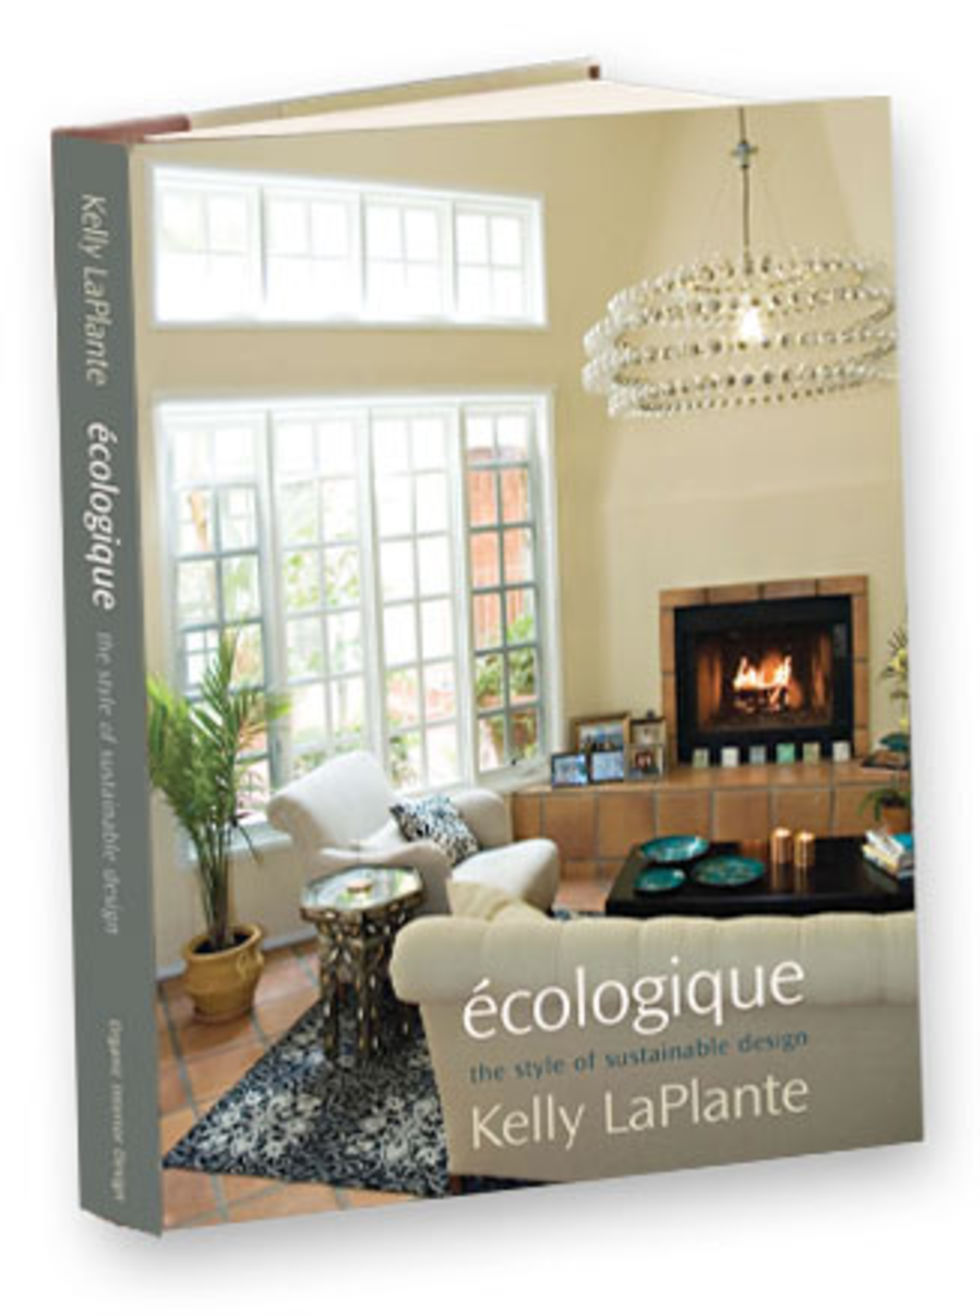 Ecologique: The Style of Sustainable Design